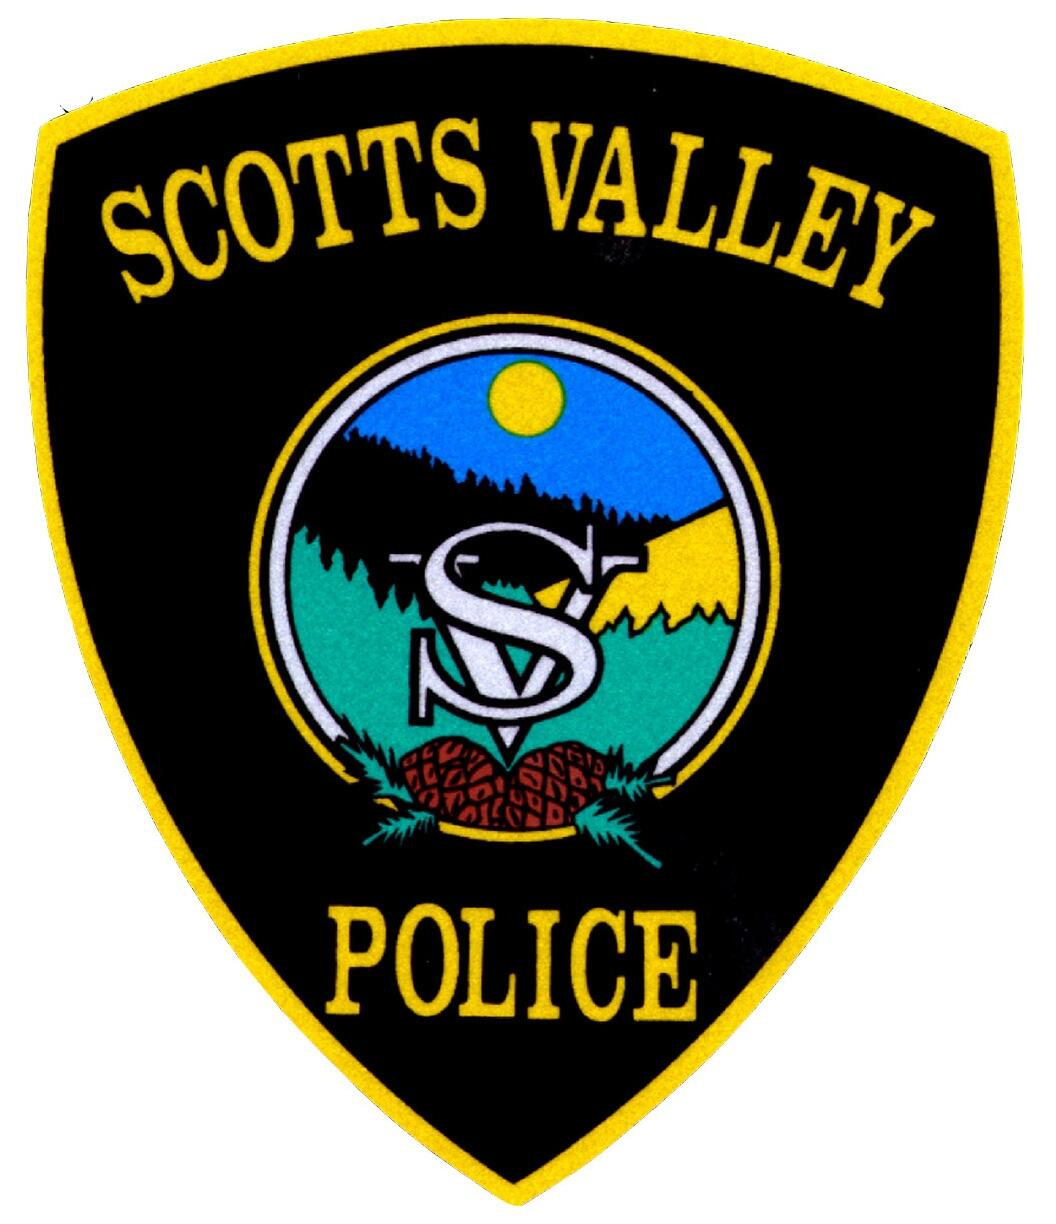 Scotts Valley Police Department - 52 Crime and Safety